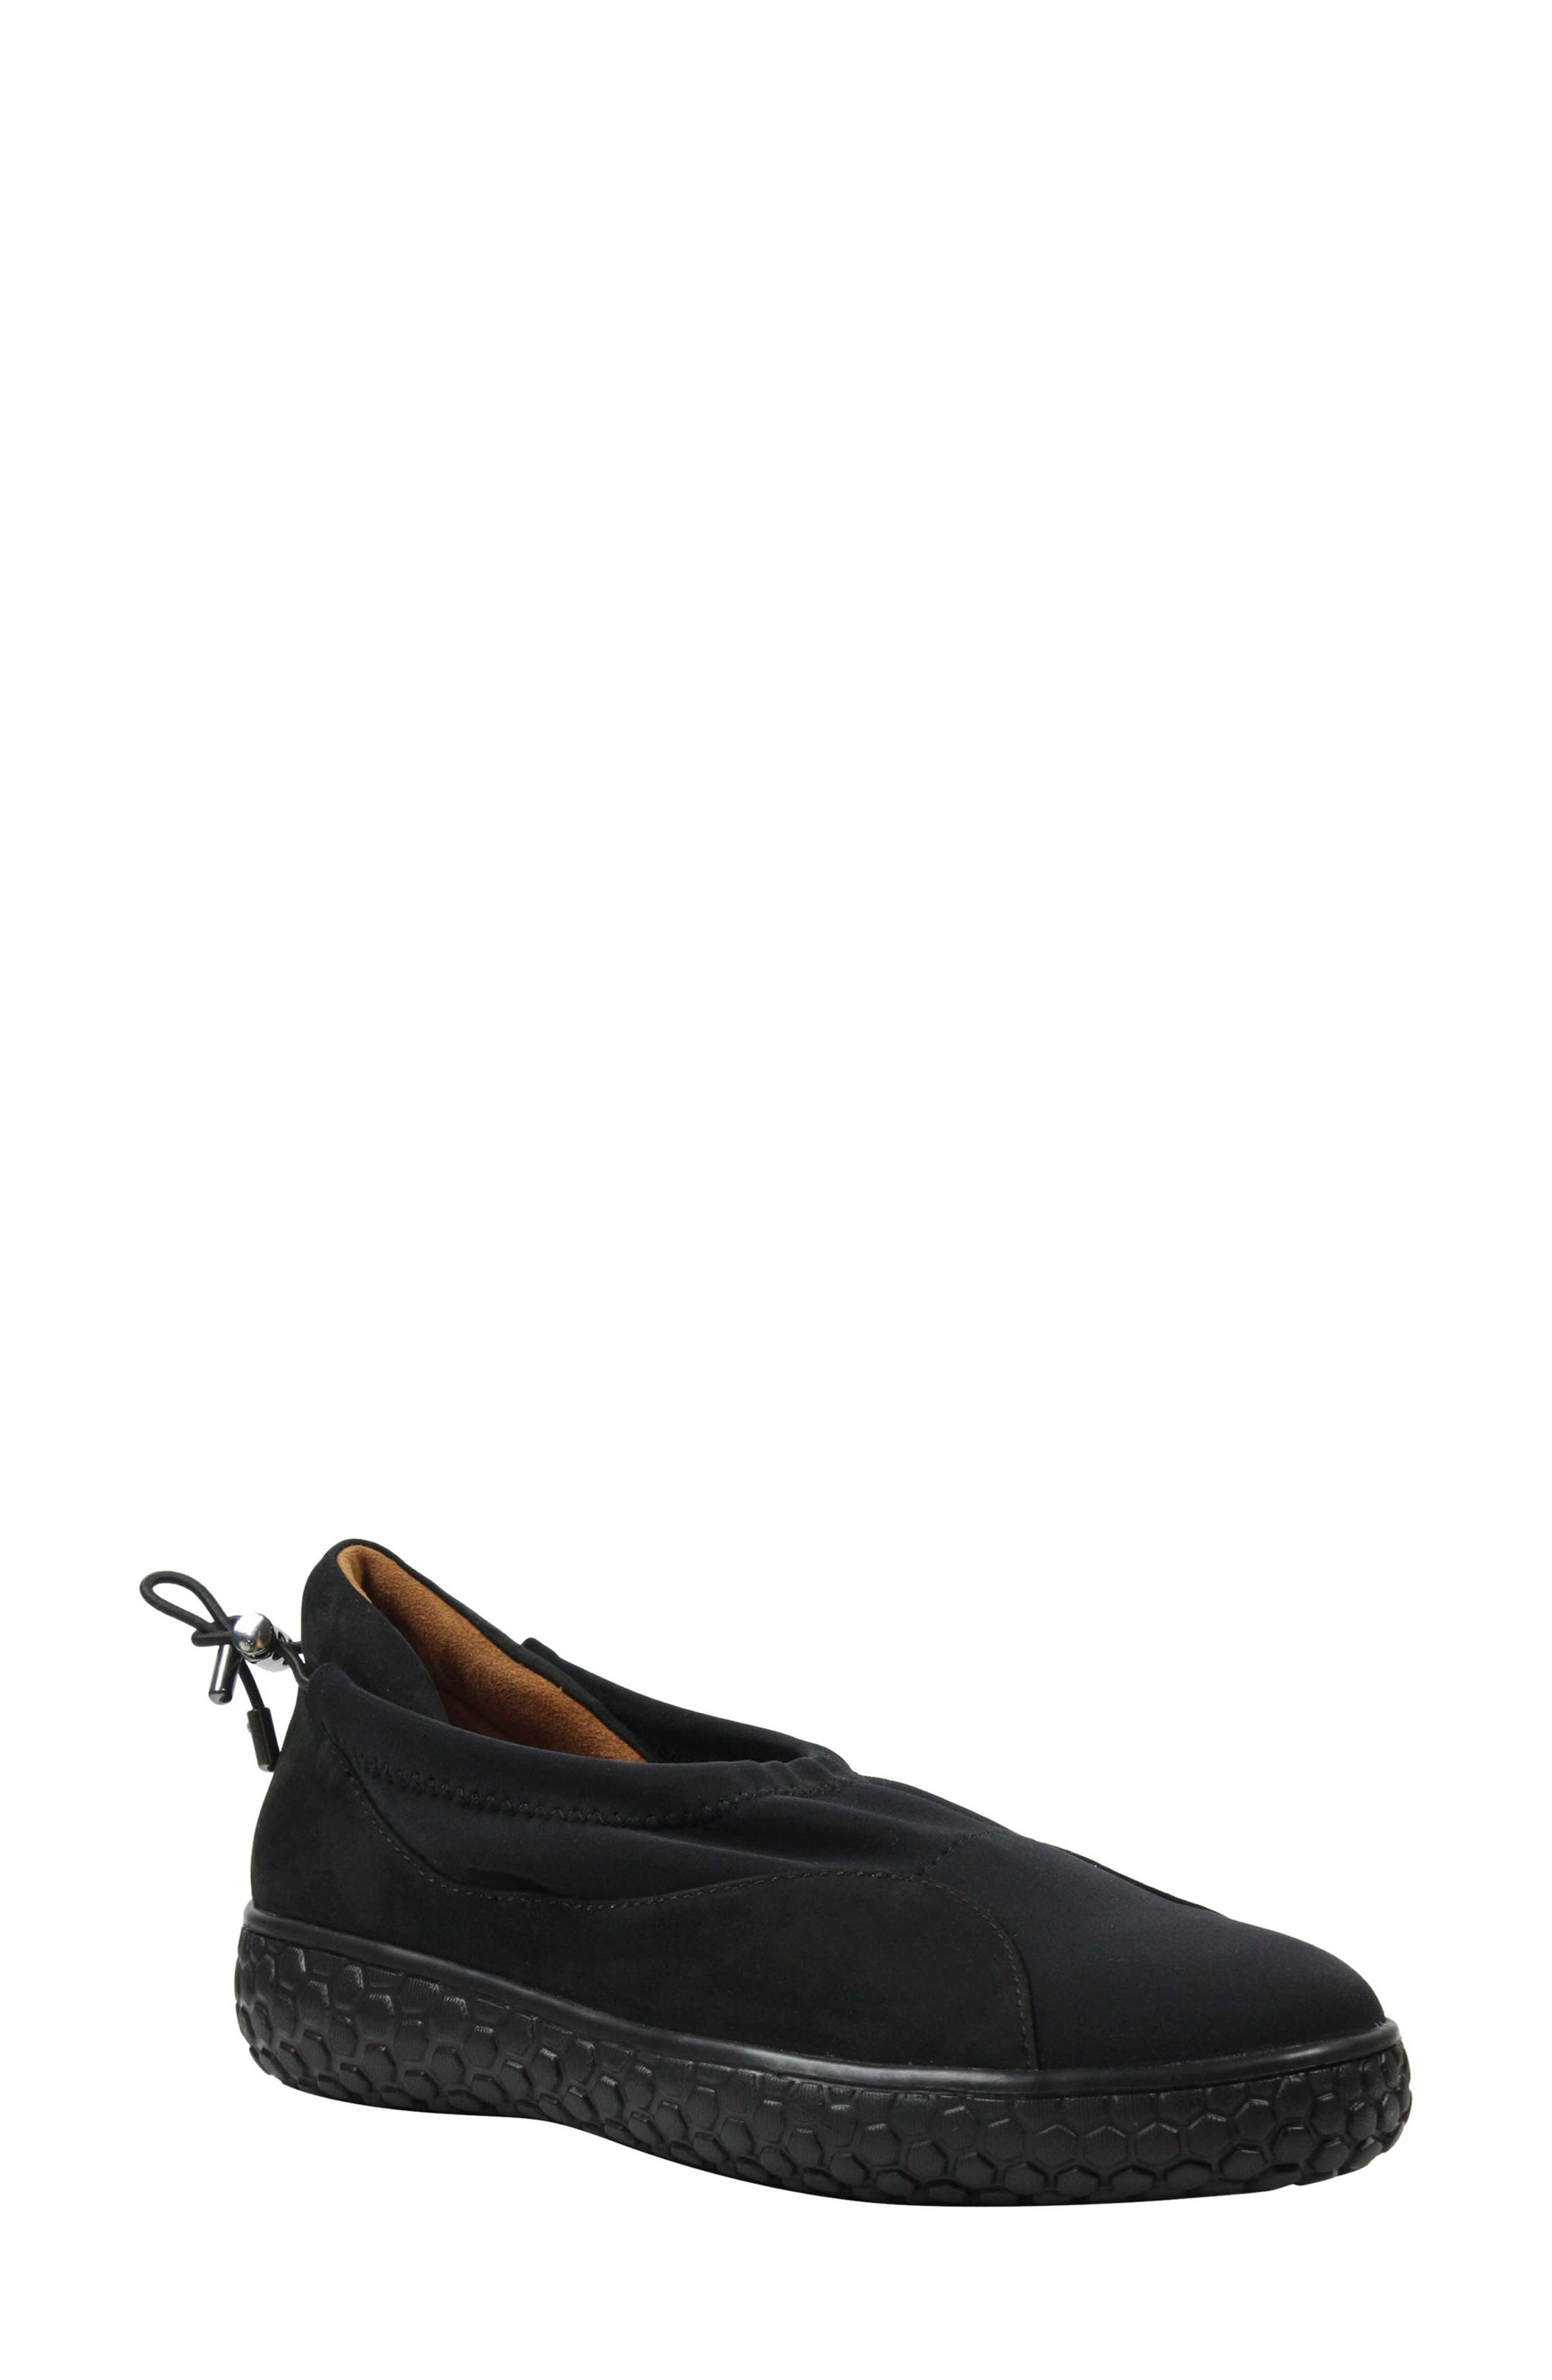 Zaidee Flat,                             Main thumbnail 1, color,                             BLACK NUBUCK LEATHER